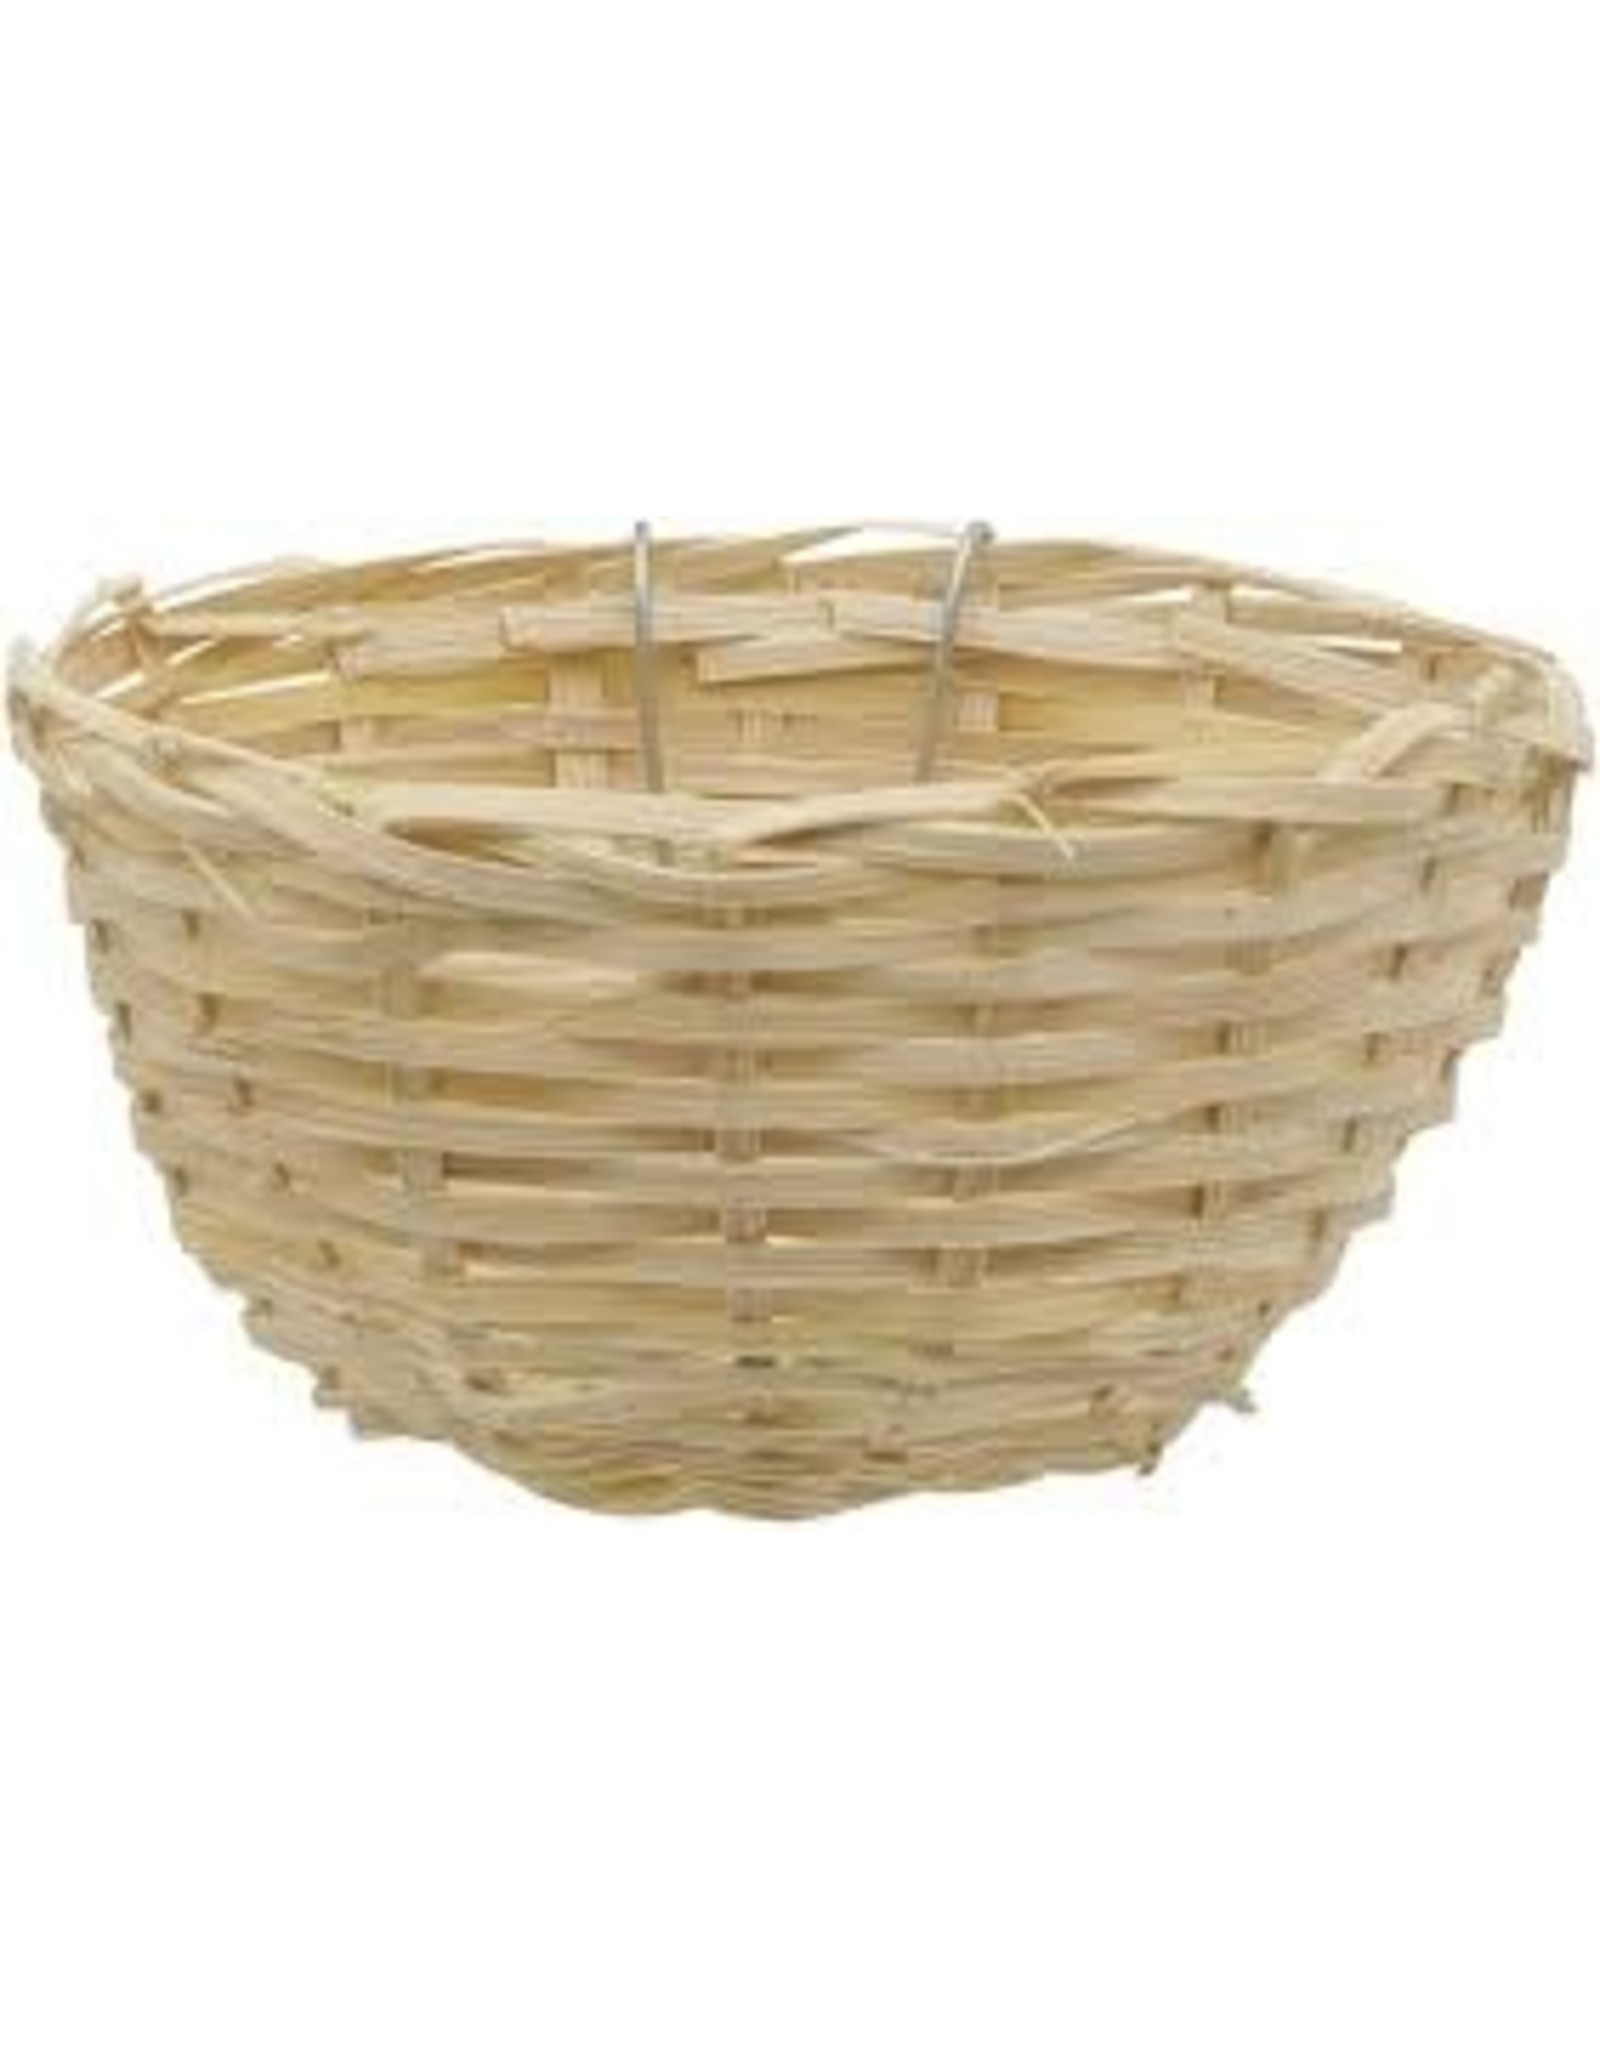 """Living World Bamboo Bird Nest for Canaries - 11 cm x 5.5 cm (4.3"""" x 2.2"""" in)"""